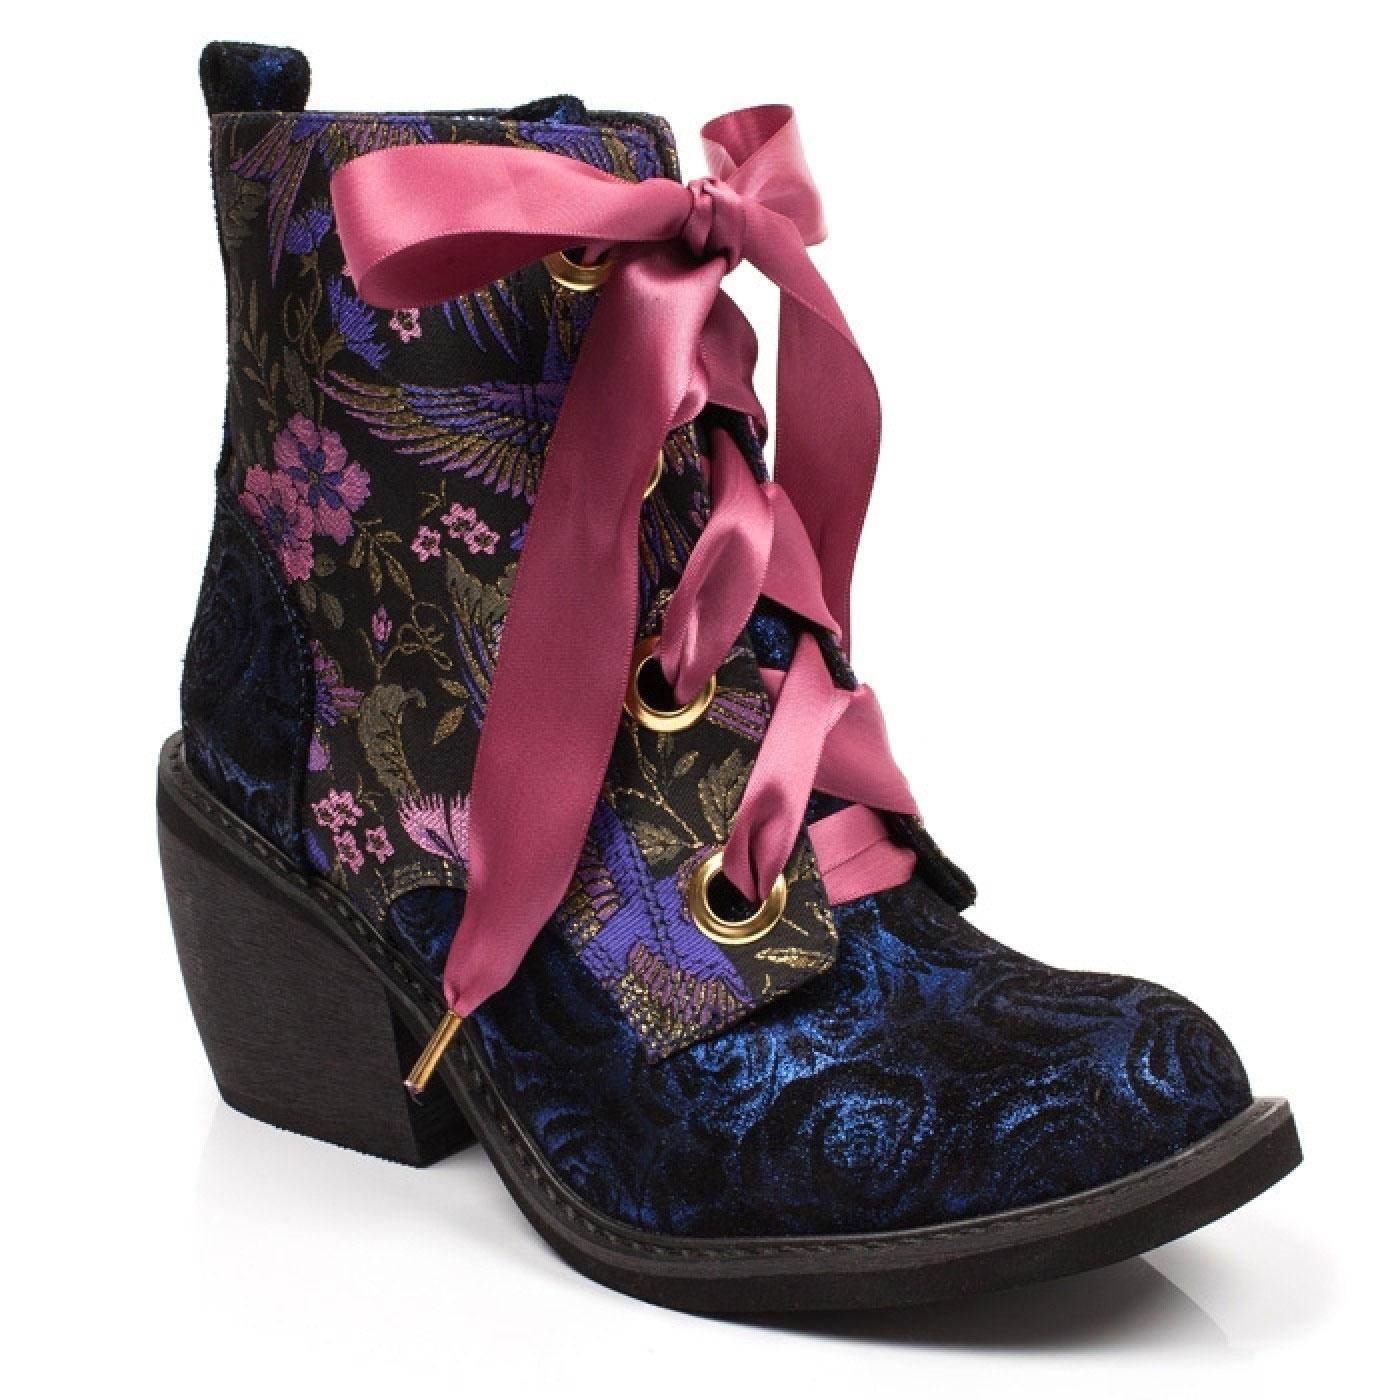 Quick Getaway IRREGULAR CHOICE Retro Bird Boots B